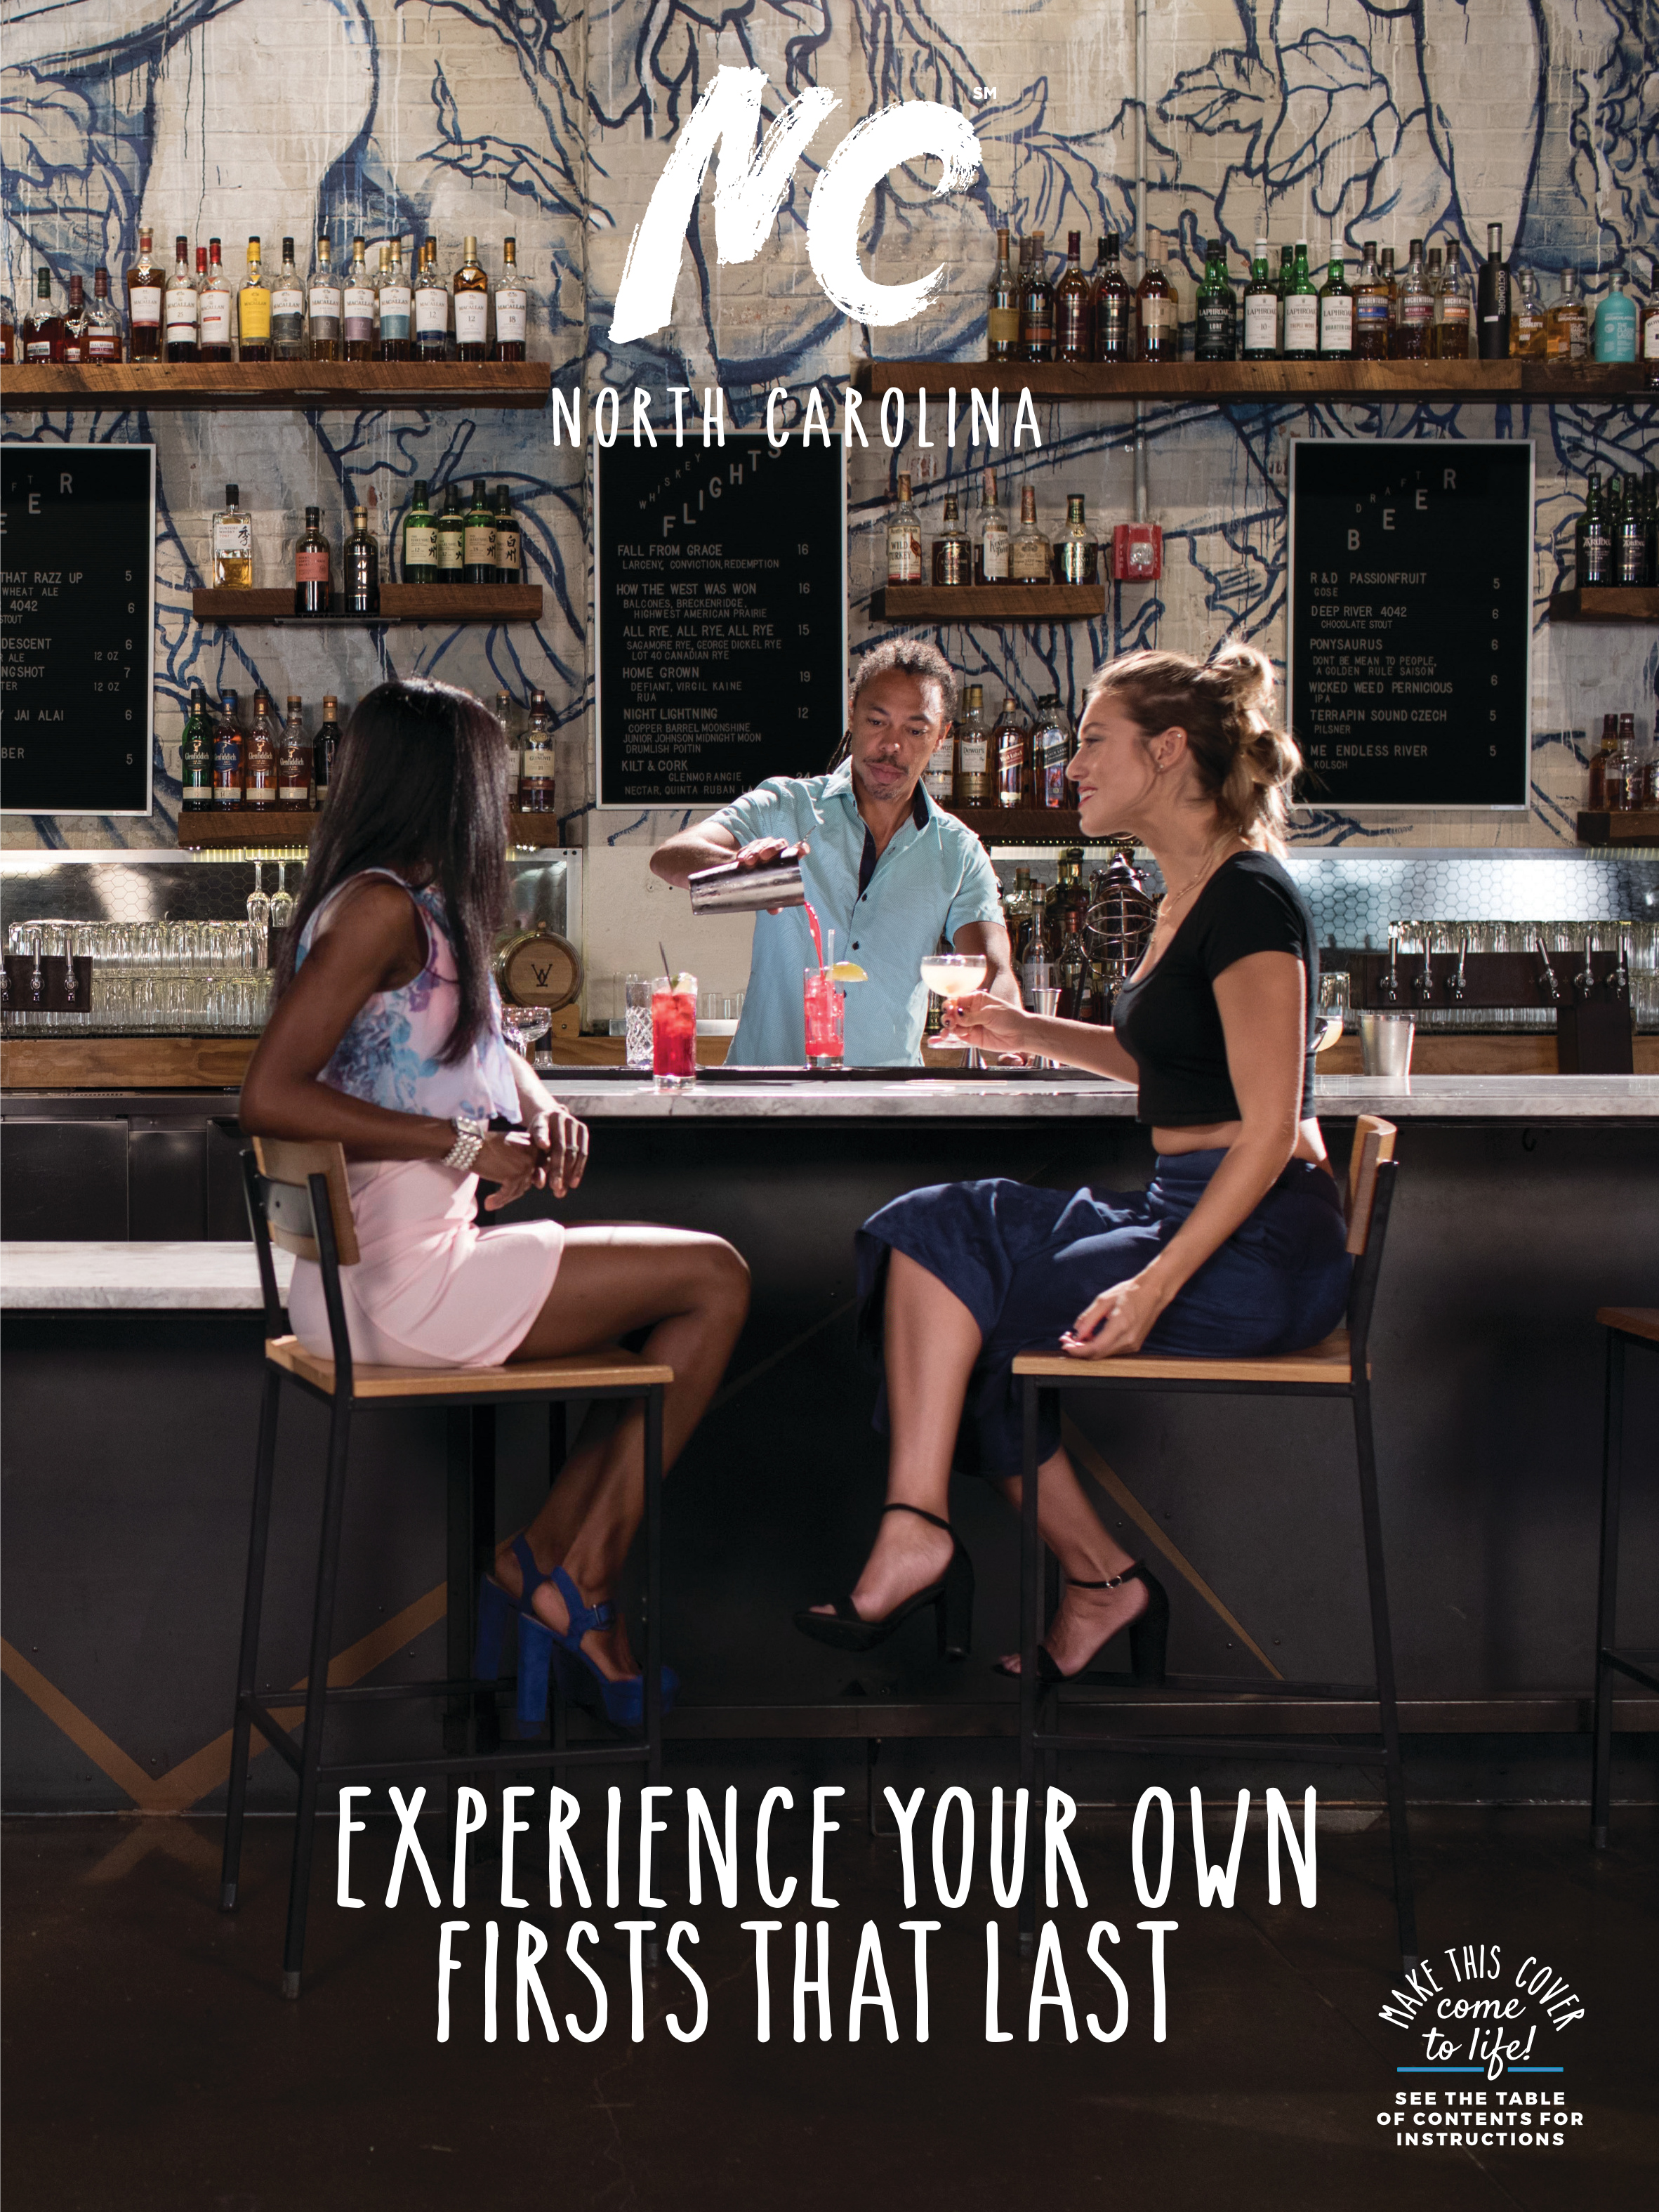 Cover Shoot at Whiskey Kitchen - For 2019 NC Travel Guide, we were asked to capture a nighttime bar scene at Whiskey Kitchen for their Piedmont cover feature. The cover comes to life as a video we also shot, brought to life through the Layars app.